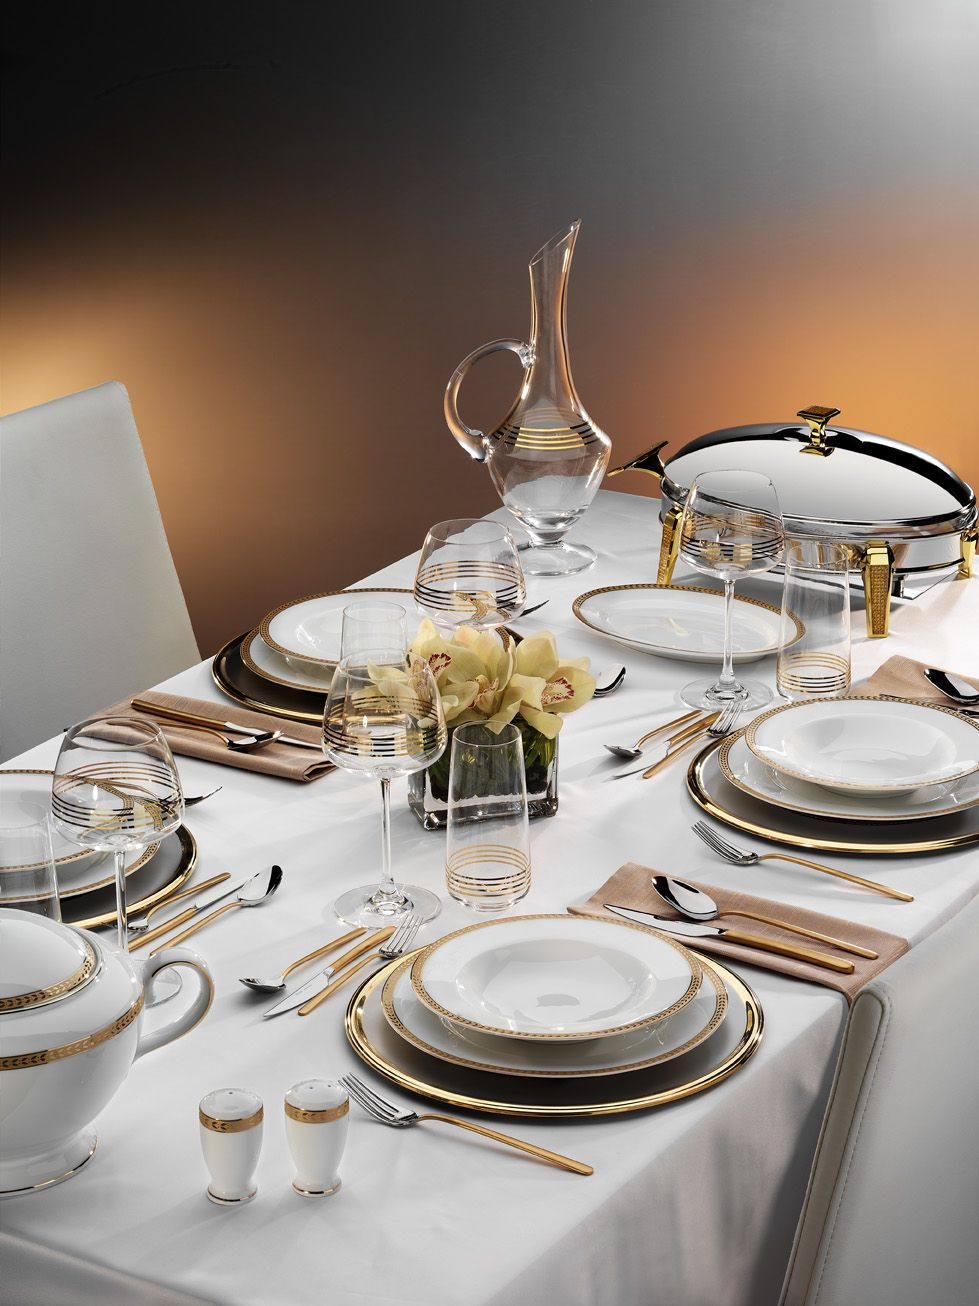 Hisar Art Of Dining Dining Table Accessories Dining Table